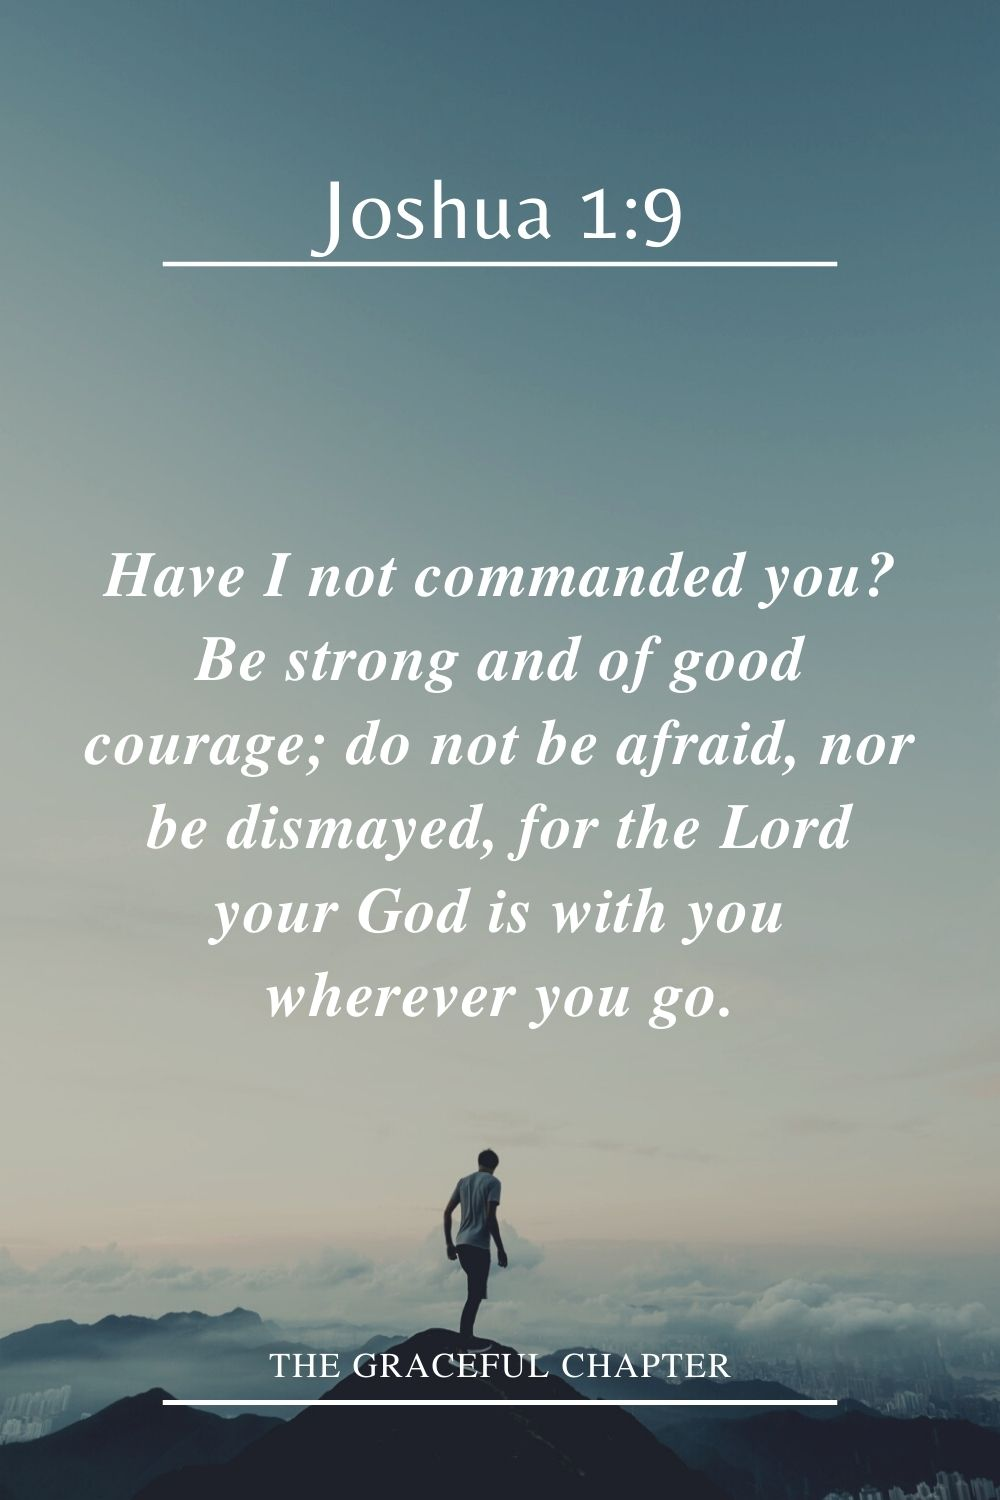 Have I not commanded you? Be strong and of good courage; do not be afraid, nor be dismayed, for the Lord your God is with you wherever you go. Joshua 1:9